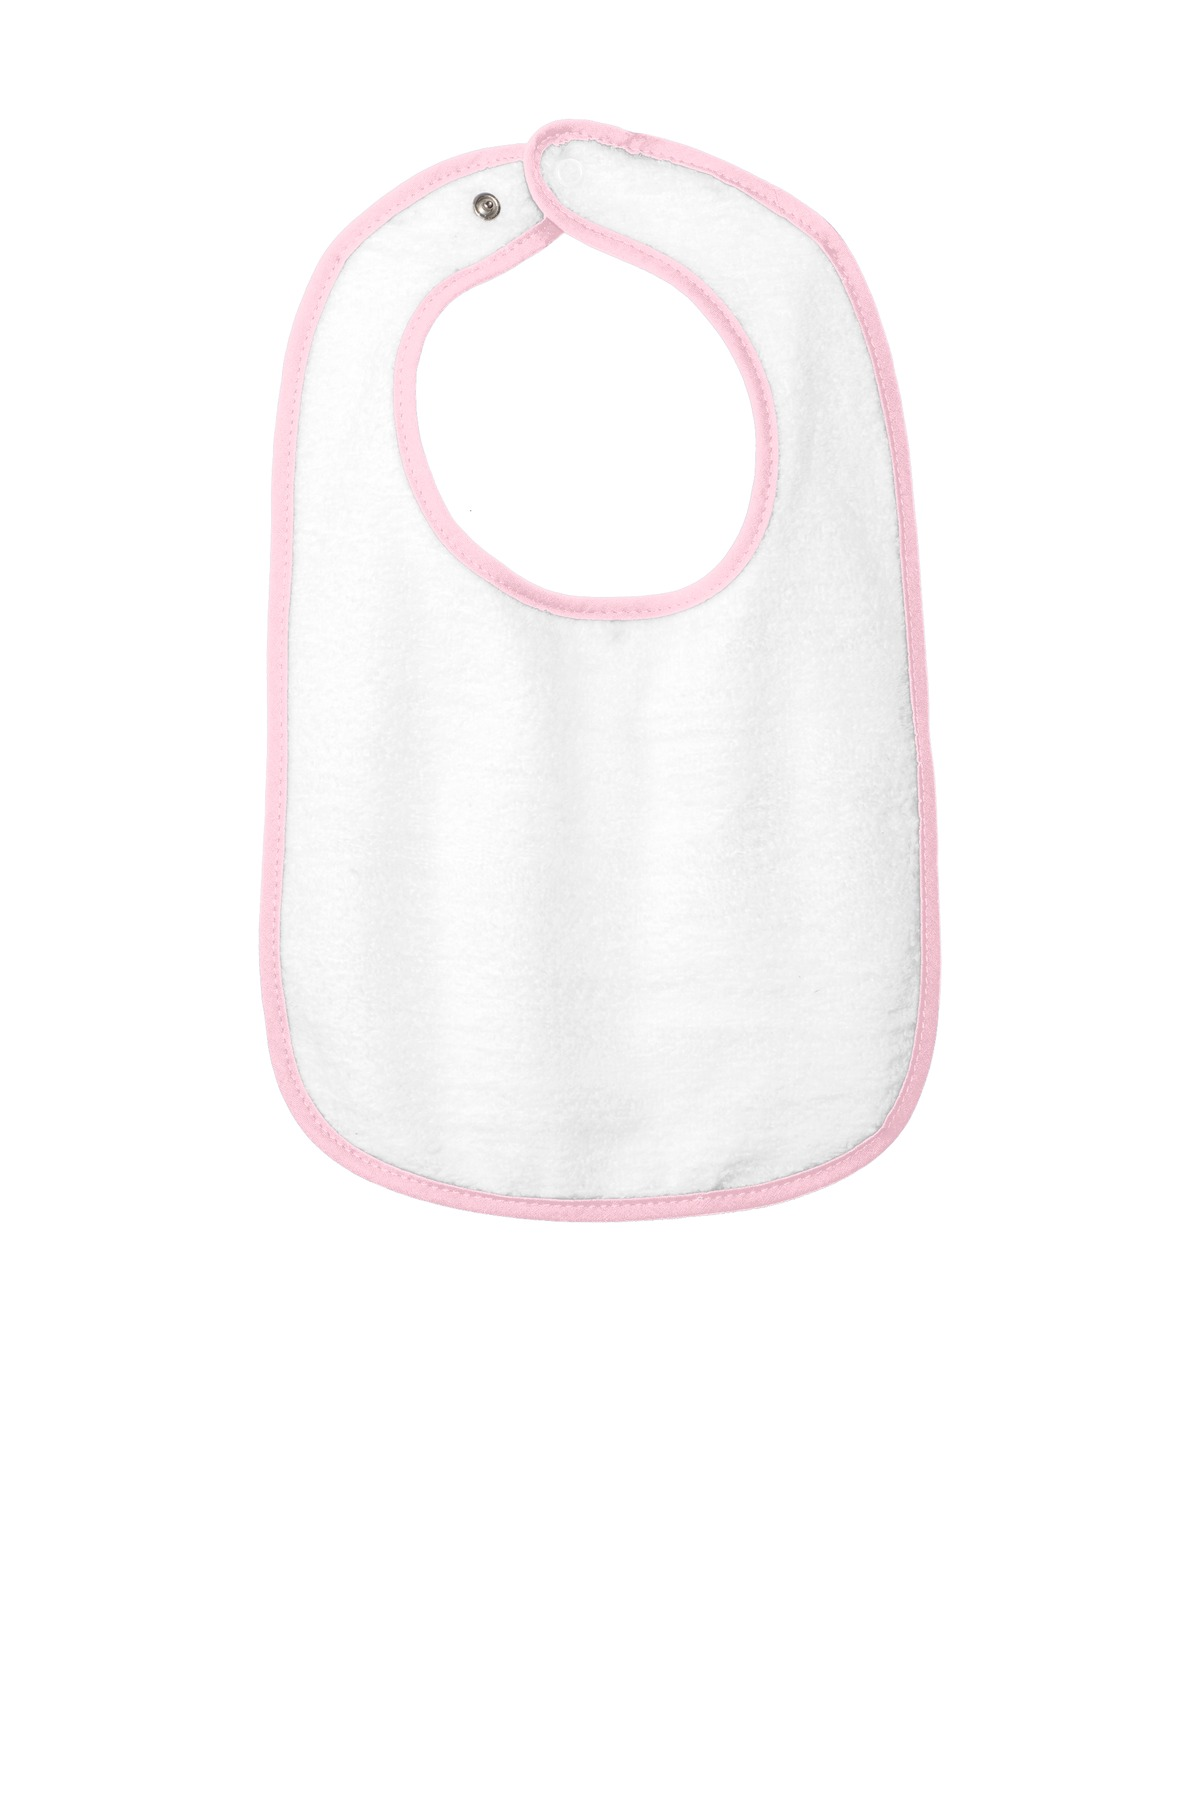 Rabbit Skins ™  Infant Contrast Trim Terry Bib. RS1003 - Pink